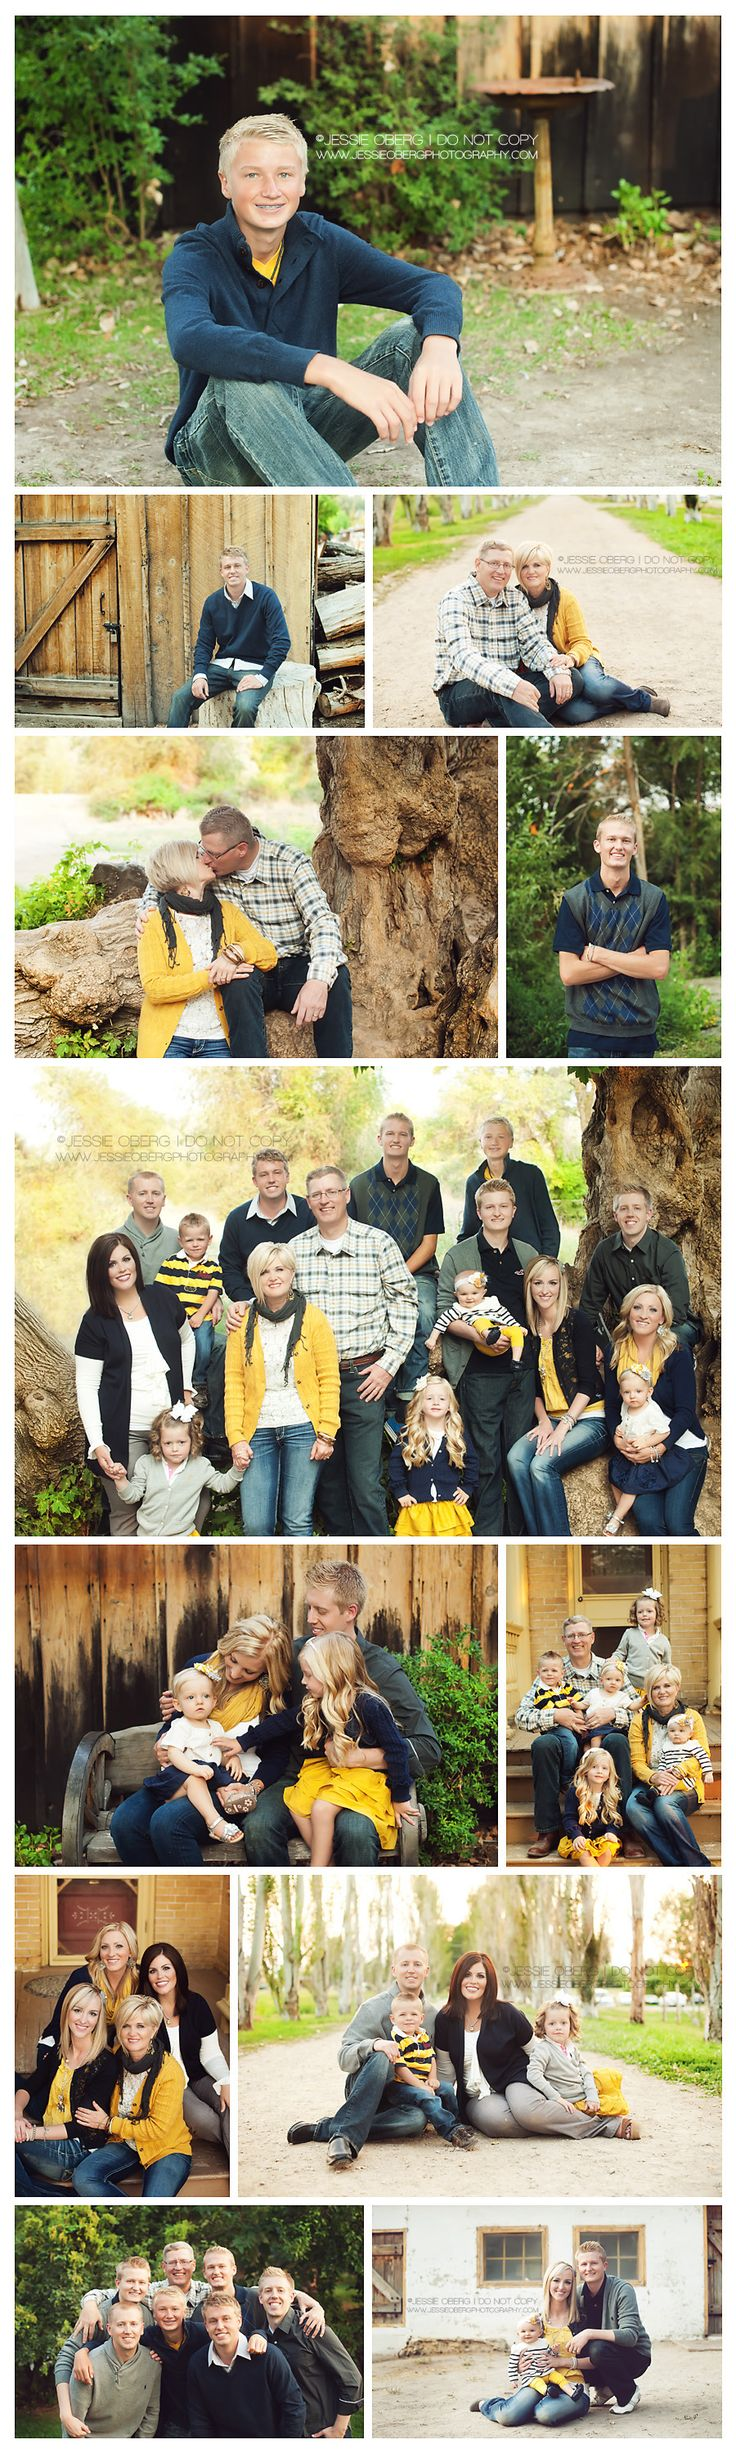 example of color pop in group photos...a great alternative to white t's and jeans or khakis worn with navy shirts.